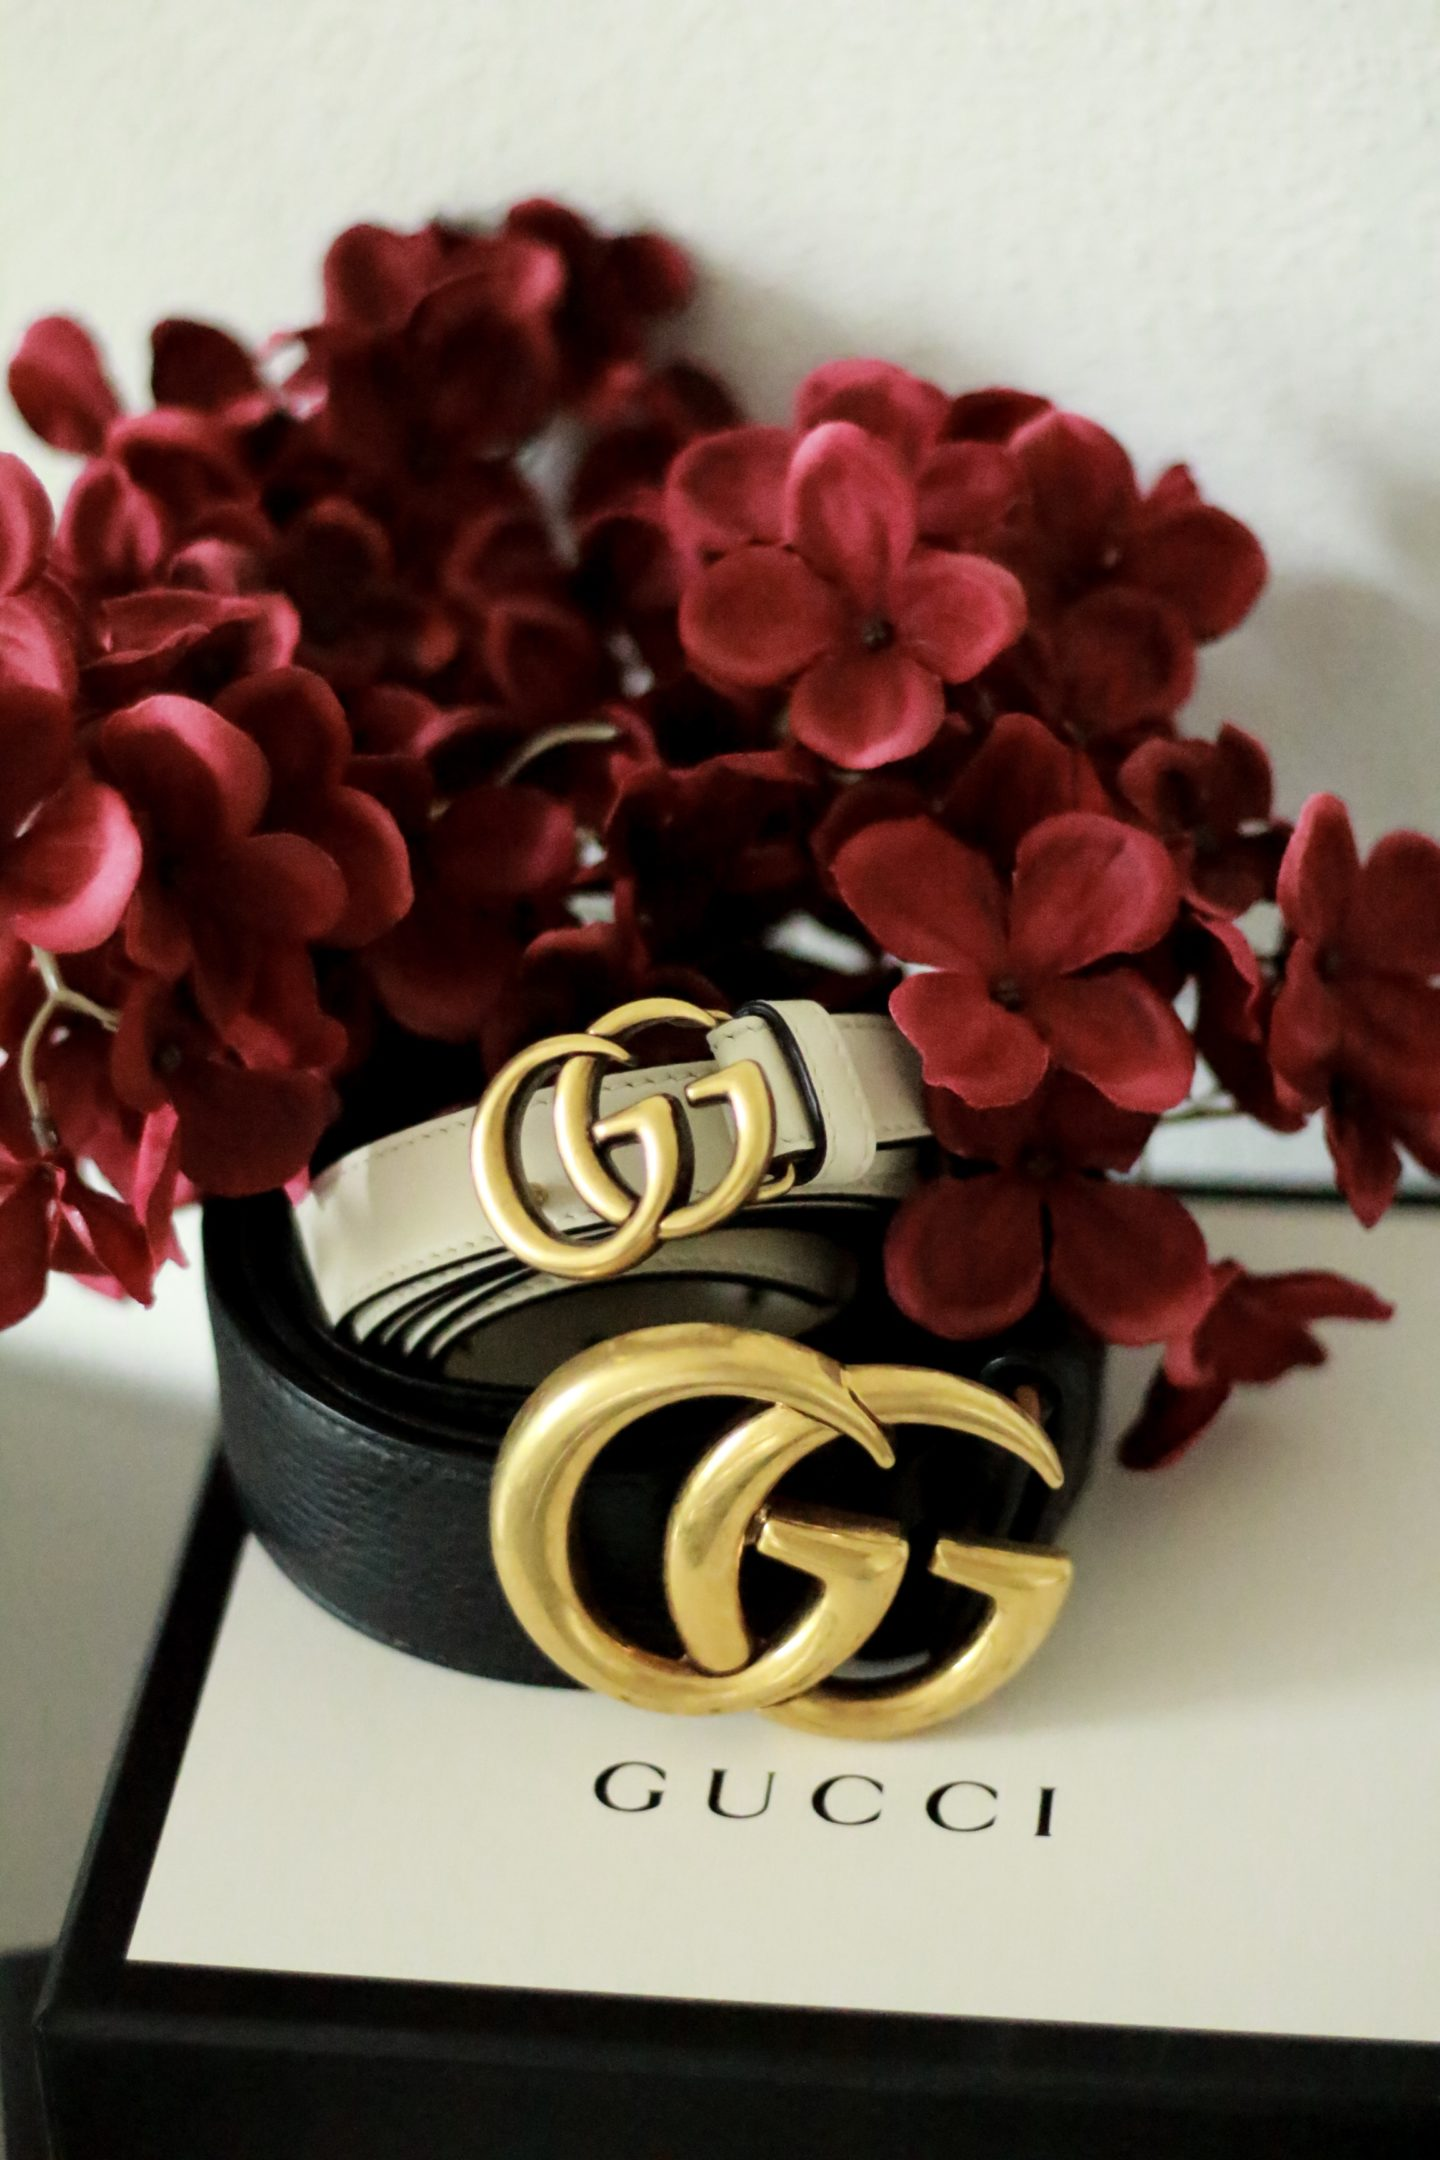 Gucci-Gürtel-Review-Vergleich-Gucci-Belt-Miss-Suzie-Loves-Susanne-Heidebach